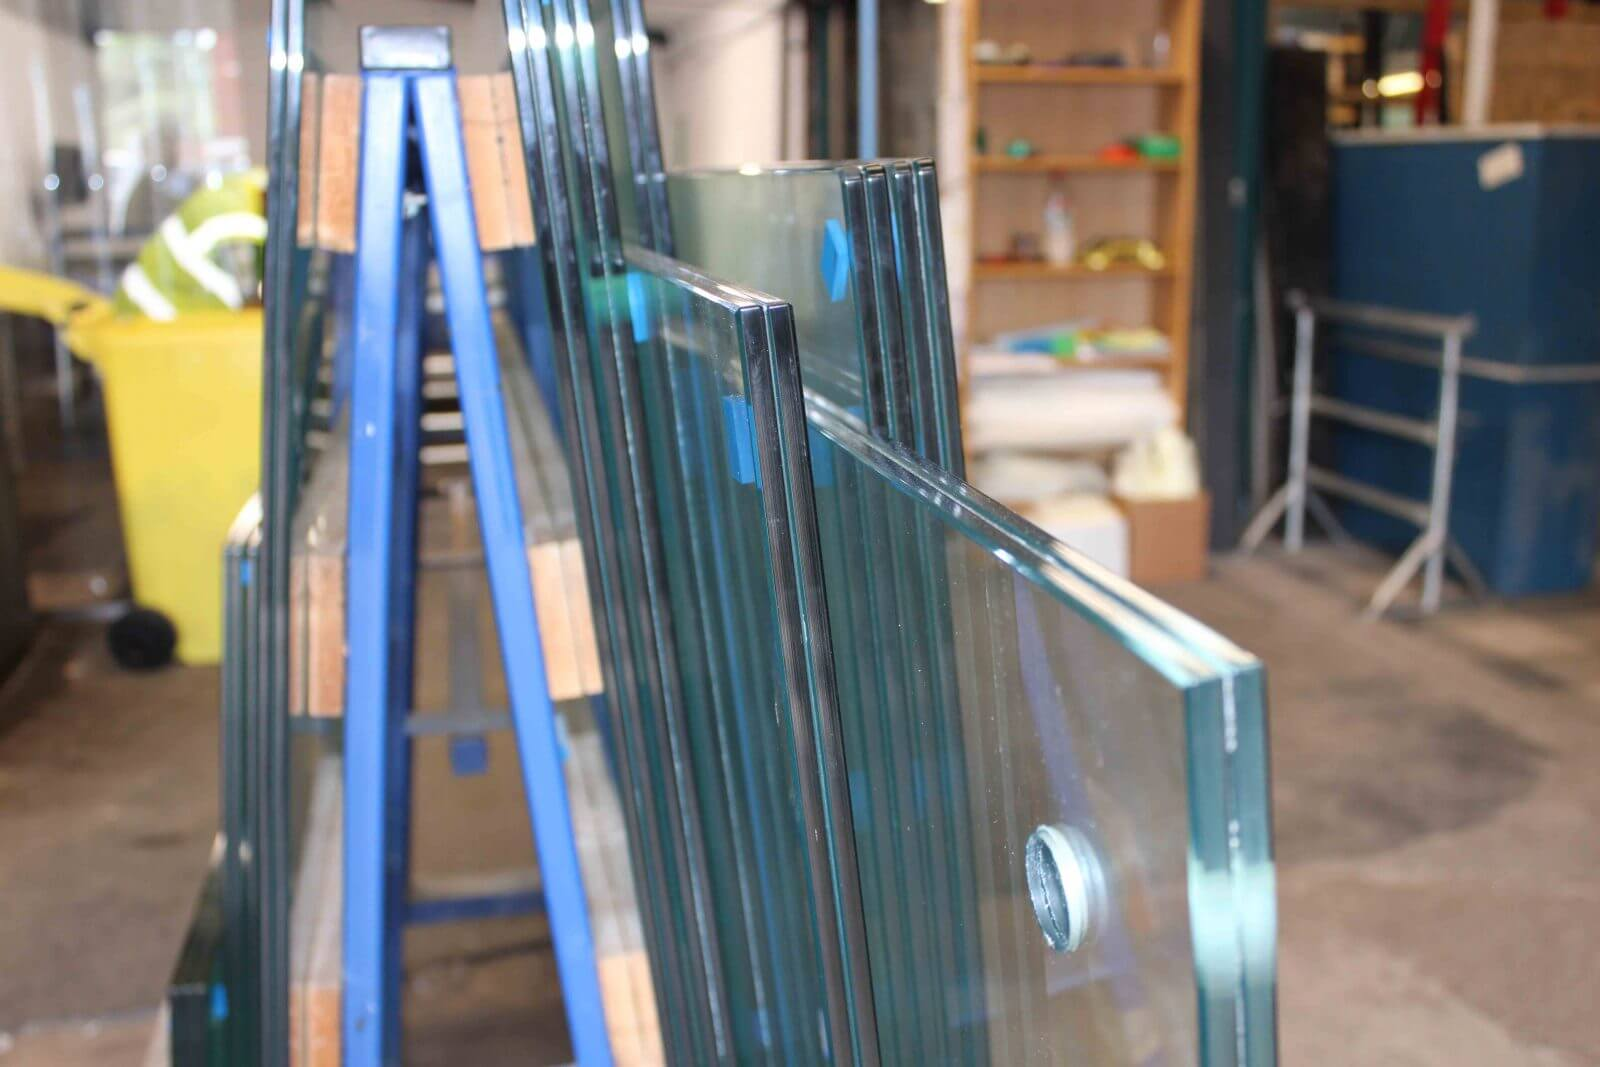 Kenya' s 25 pc excise duty on imports frustrates Tanzania glass business